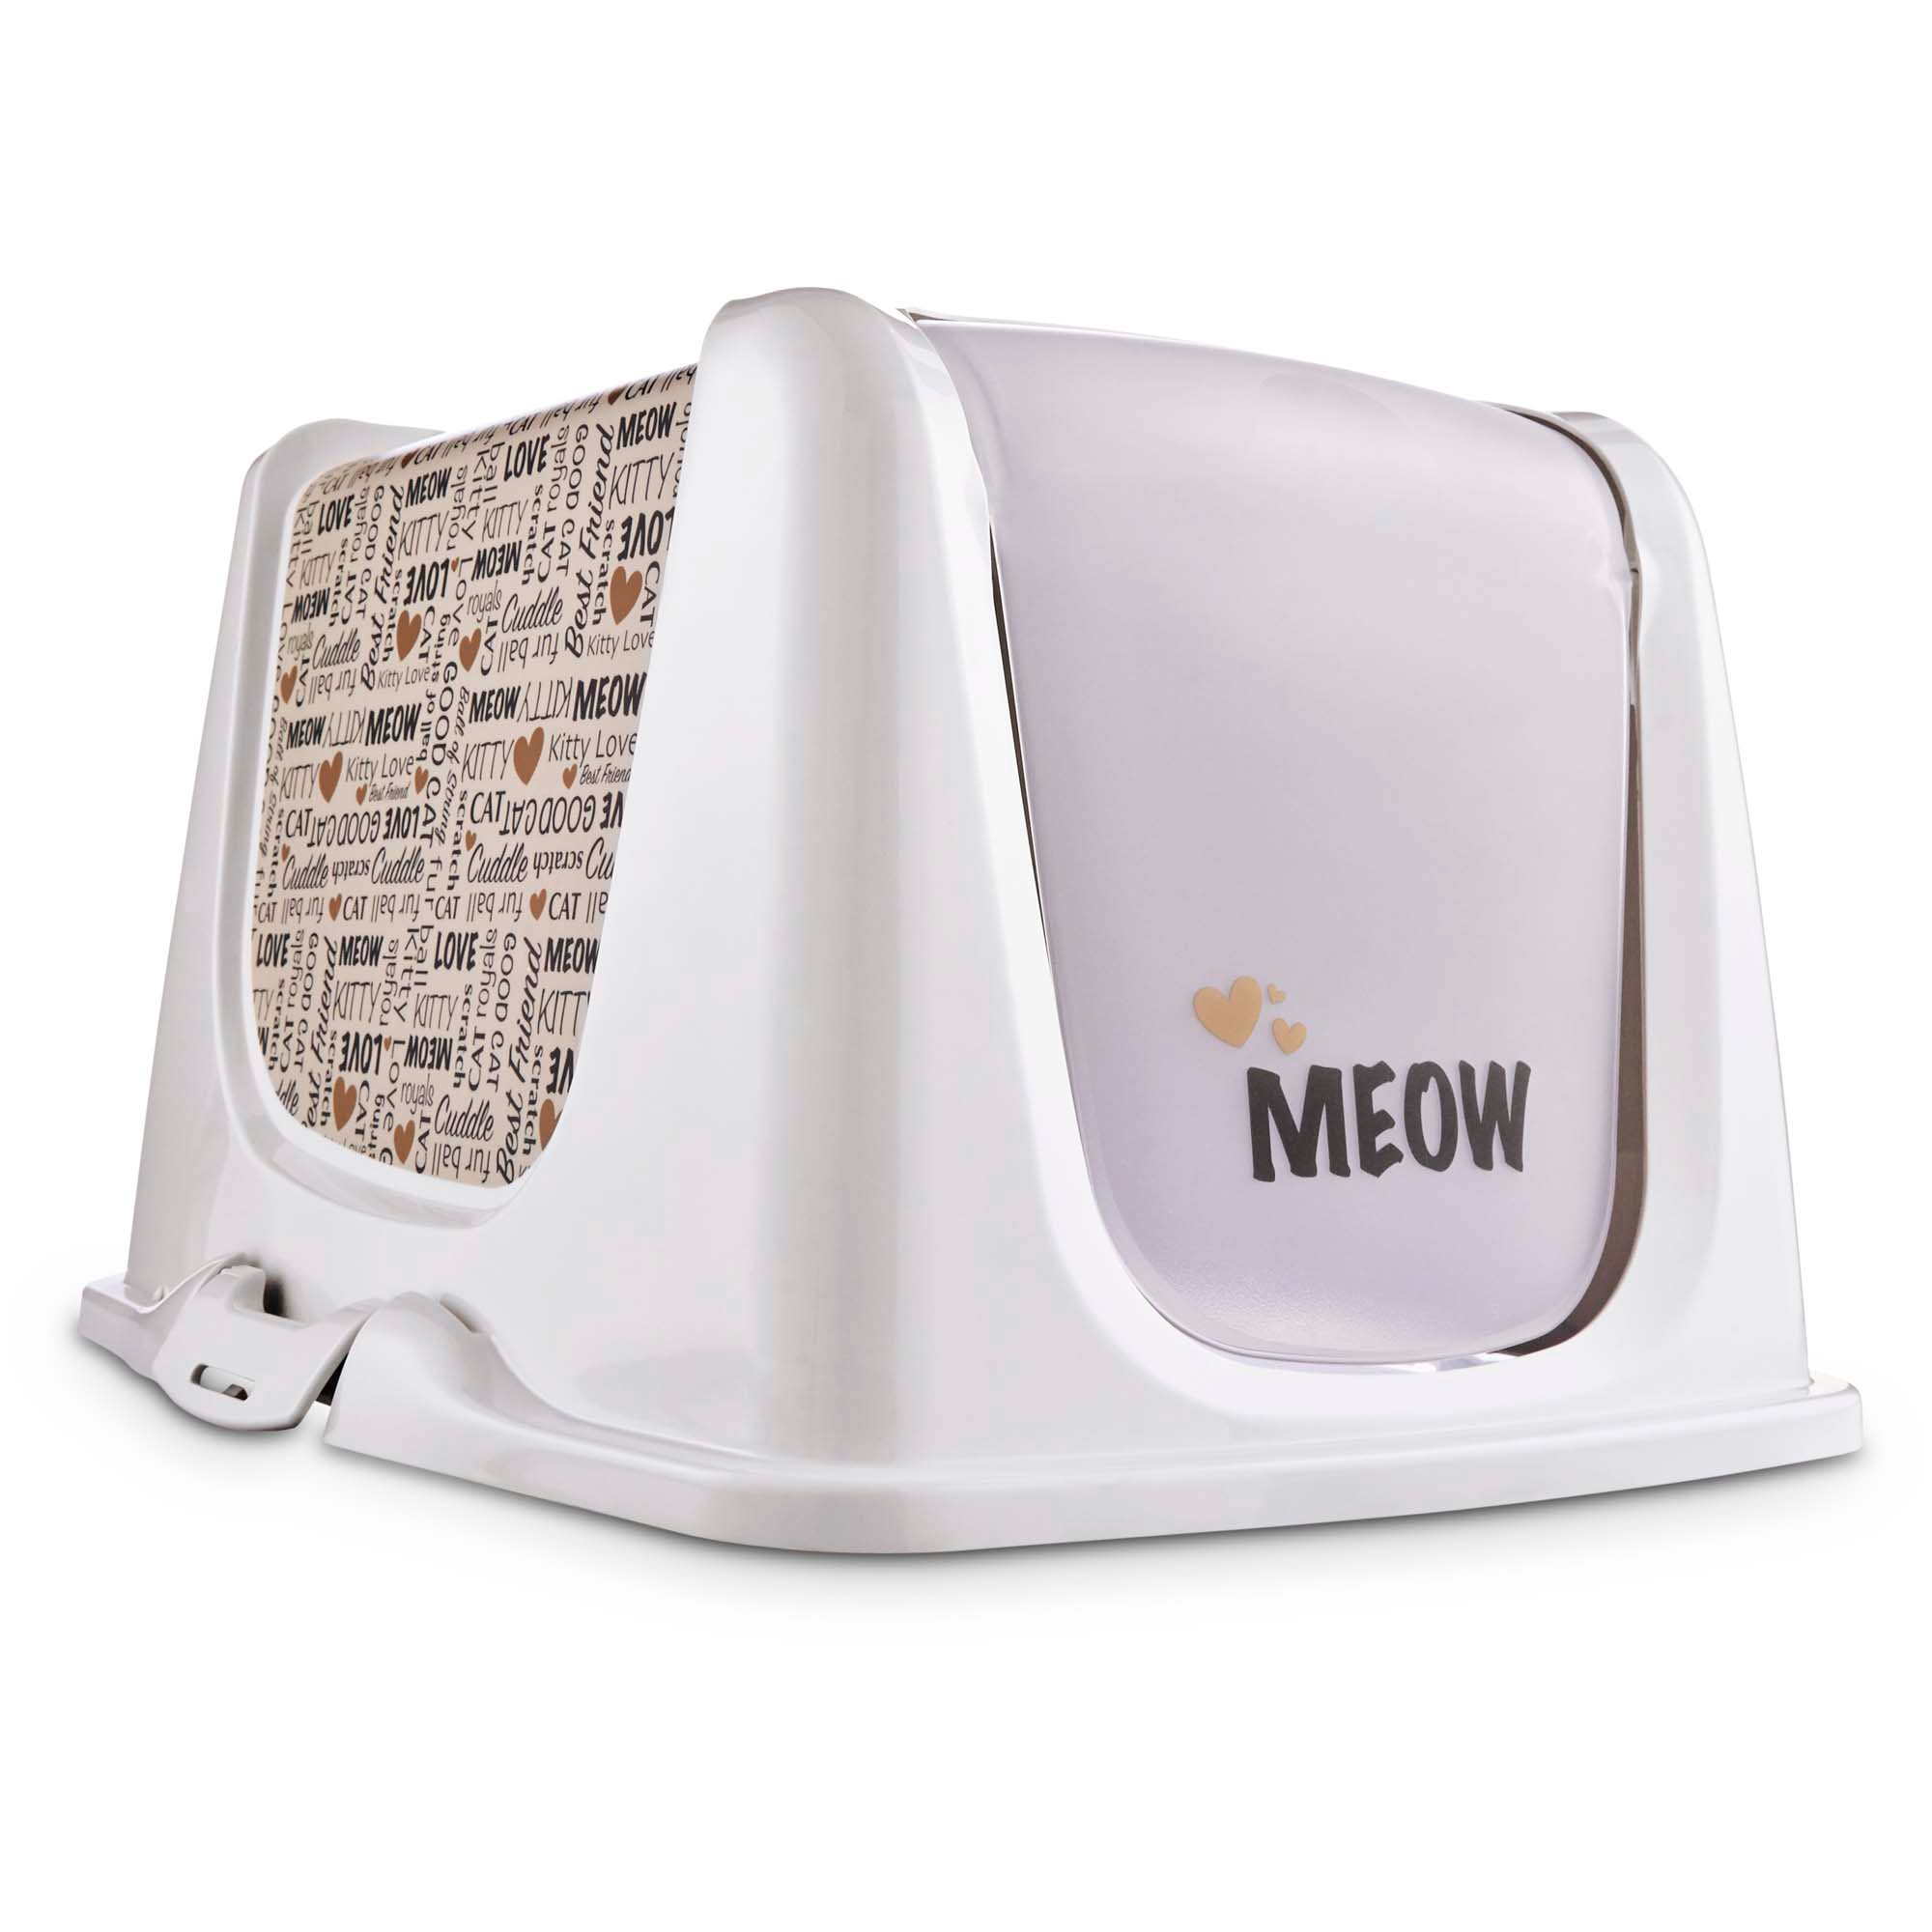 Granule Lg So Phresh Meow Cat Litter Box Privacy Hood Petco